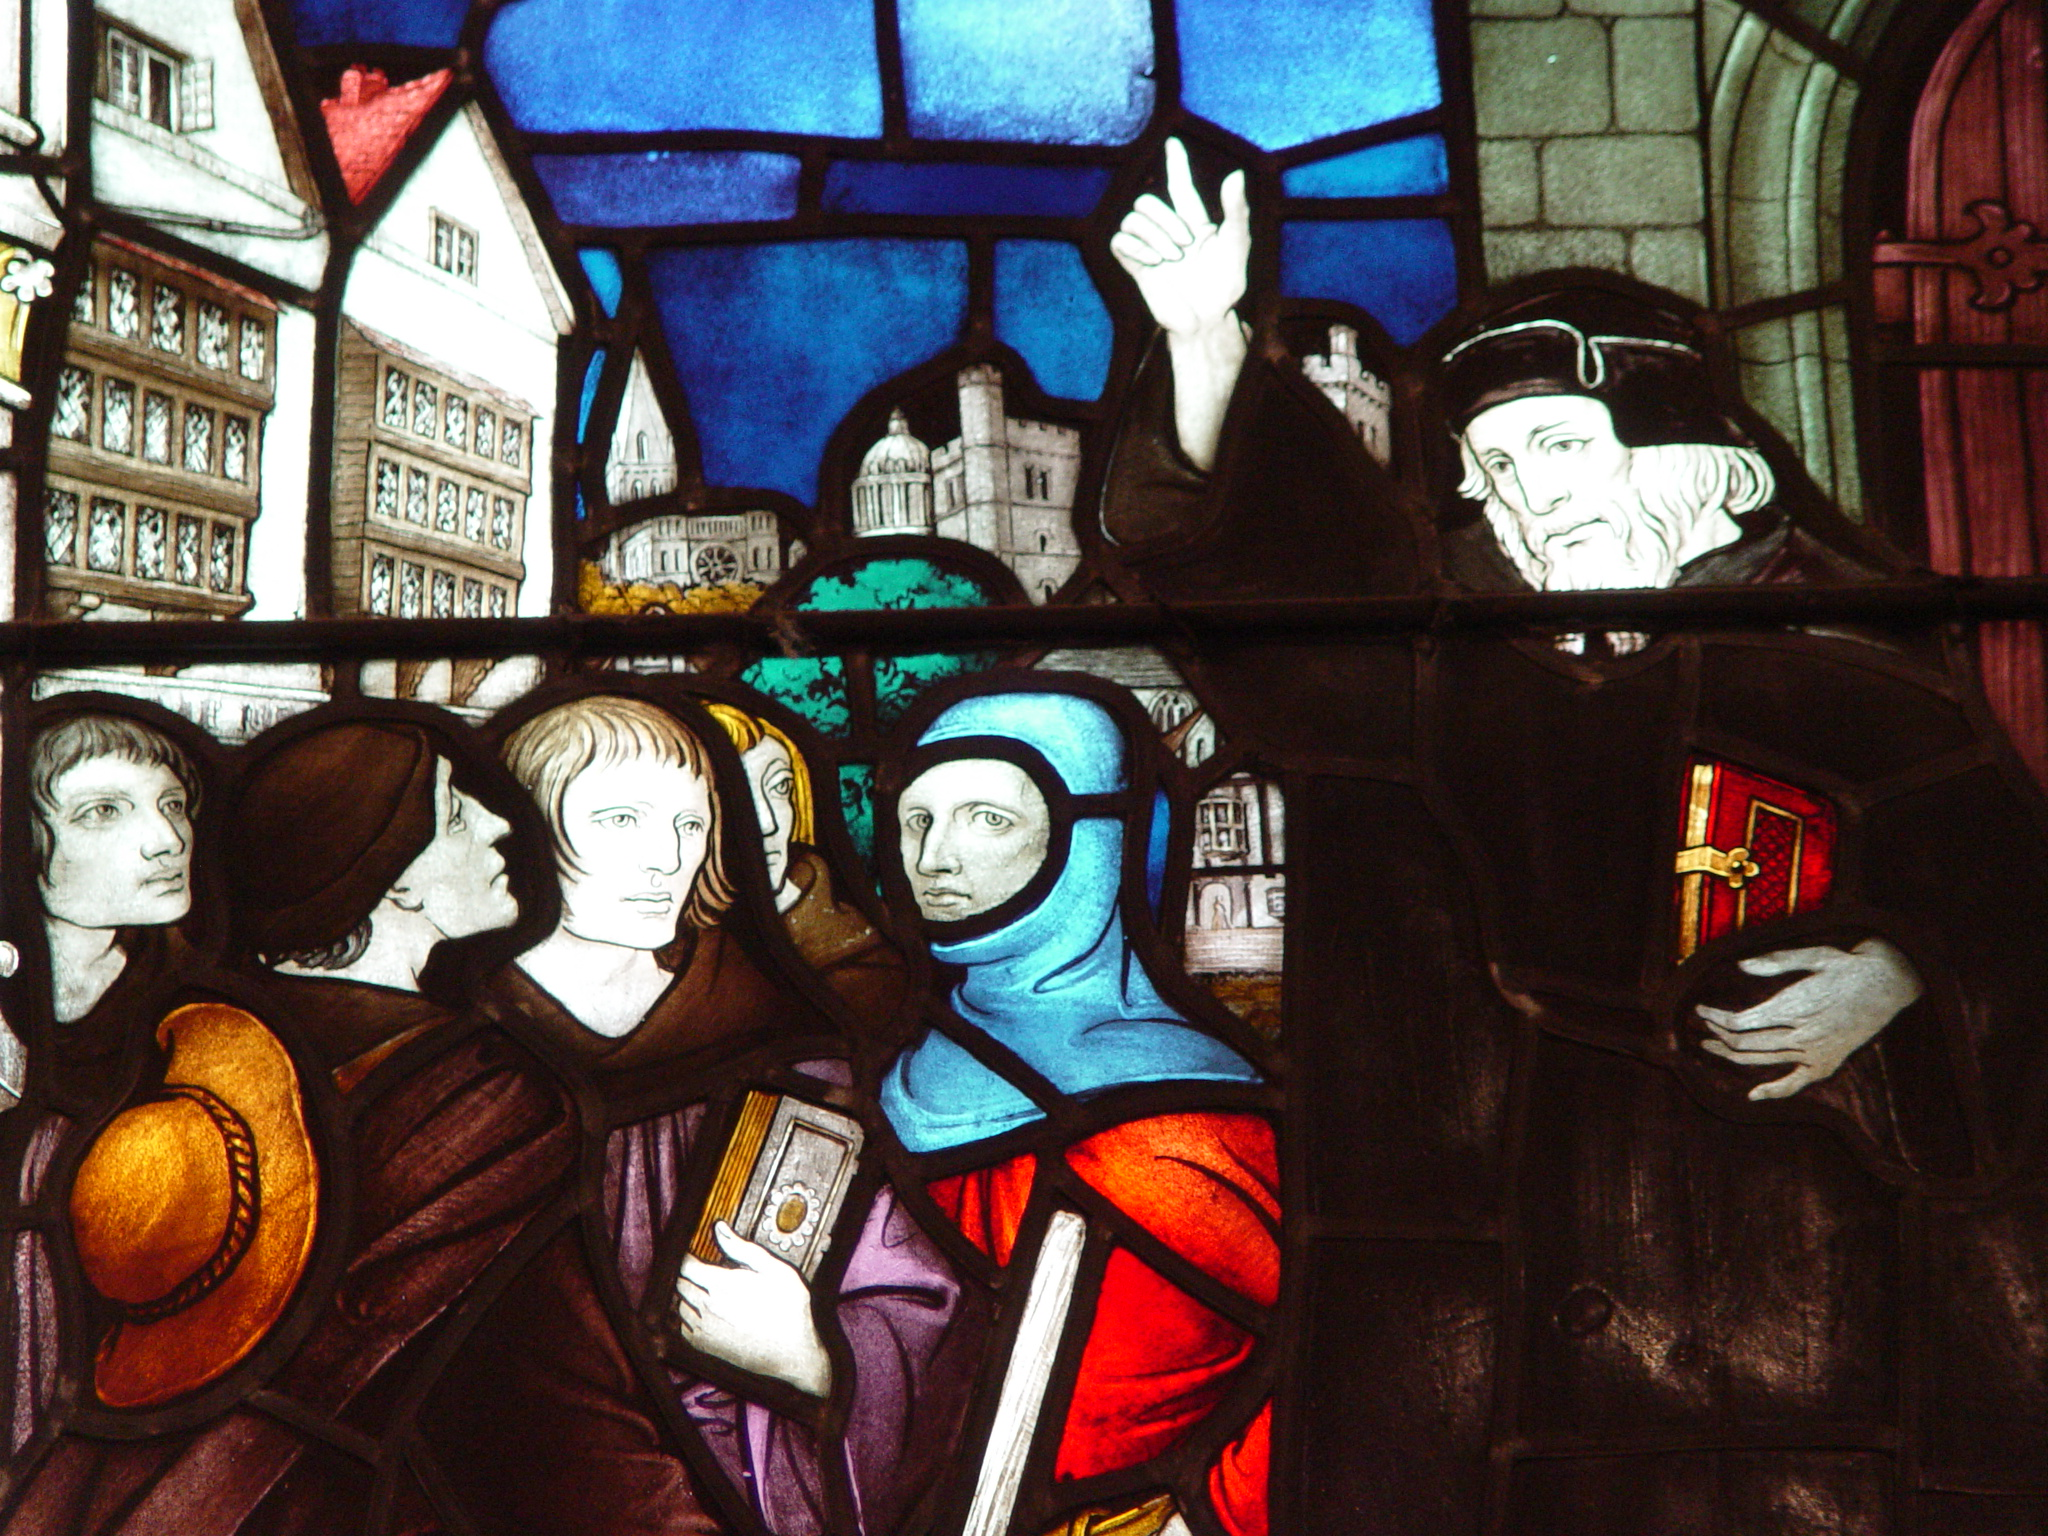 Stain glass depicting John Wycliffe sending forth preachers